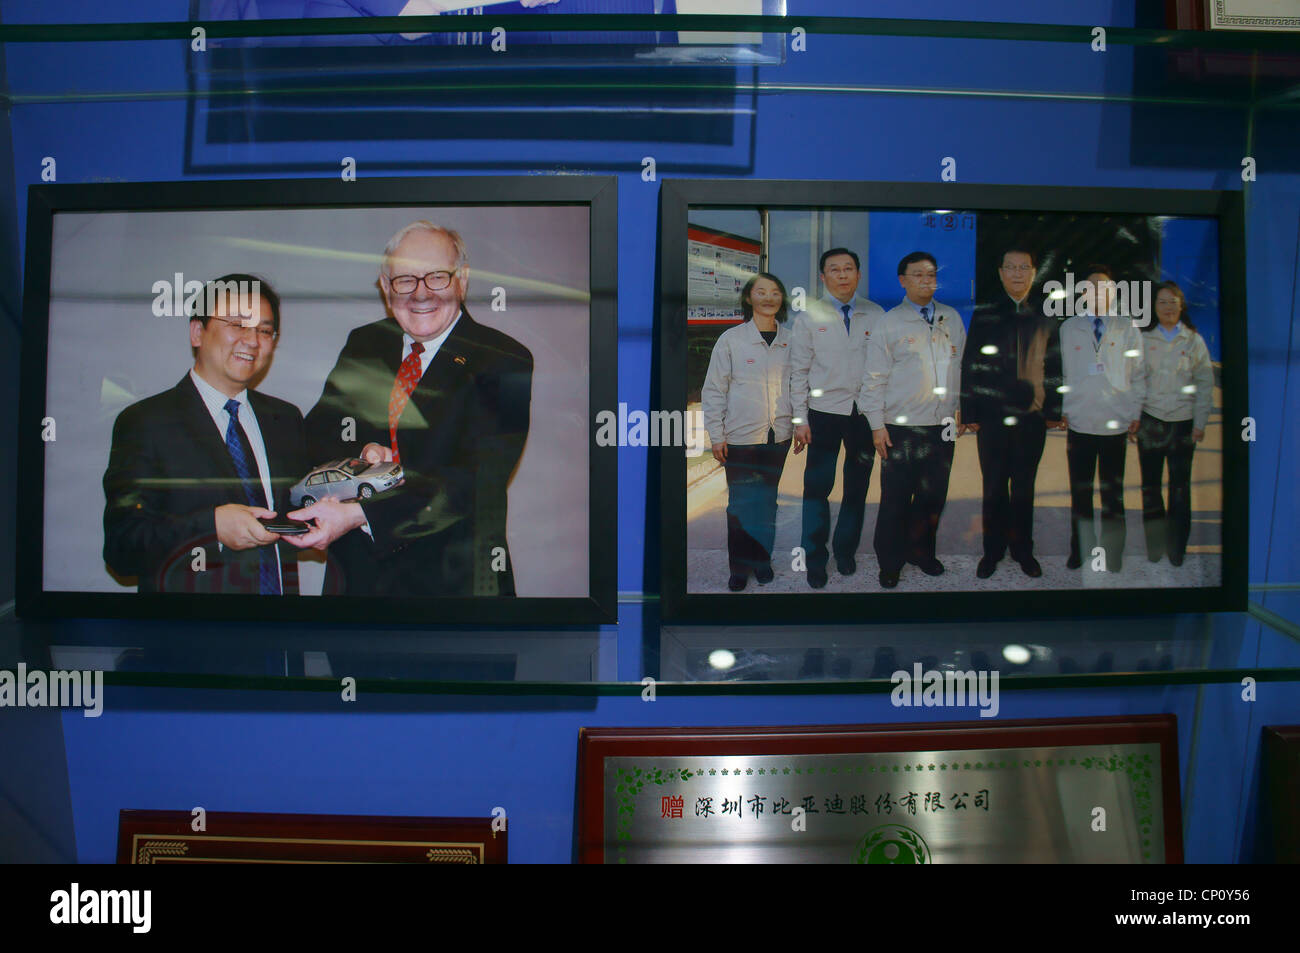 celebrity photos in BYD headquarter - Stock Image